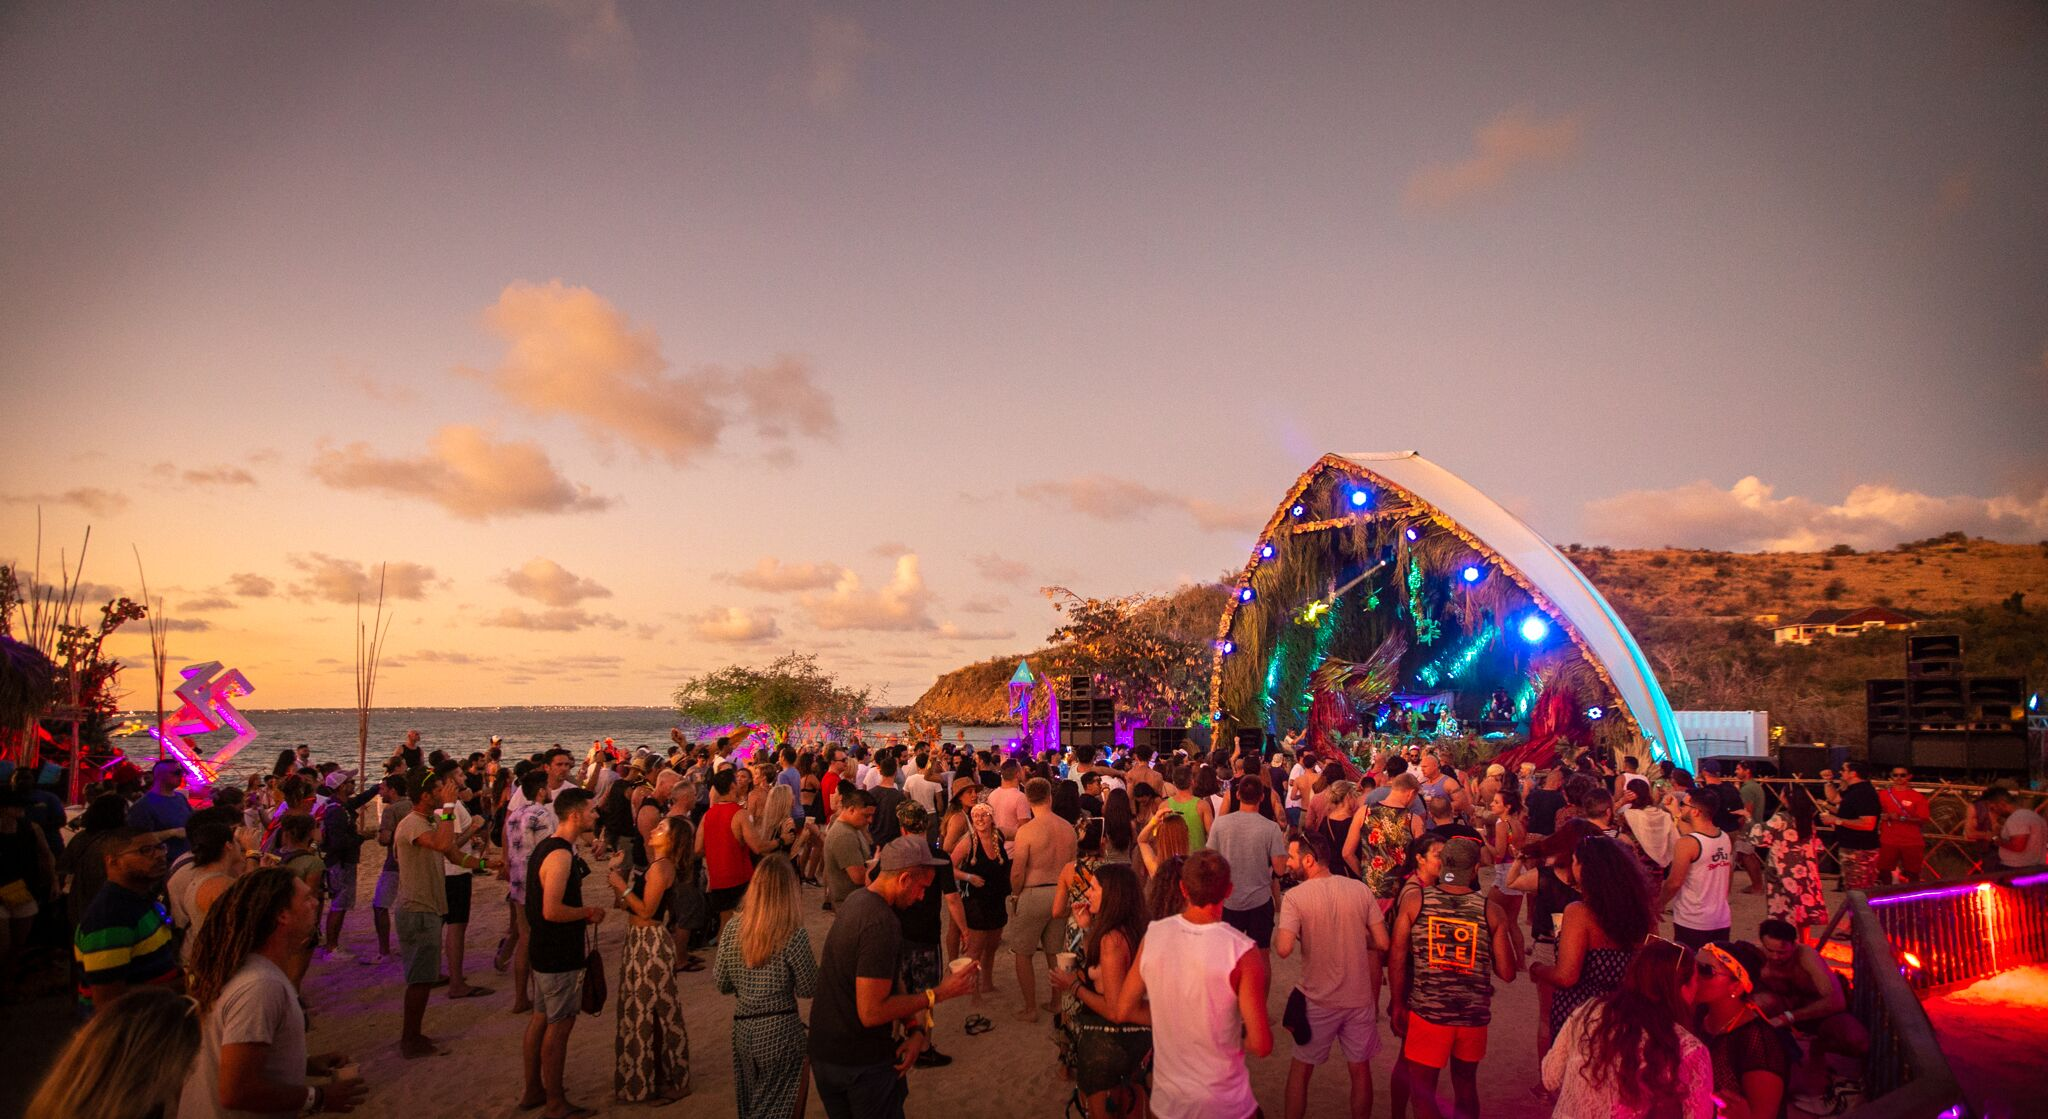 Anything But FYRE: House and Techno Festival, SXM, Returns To The Caribbean